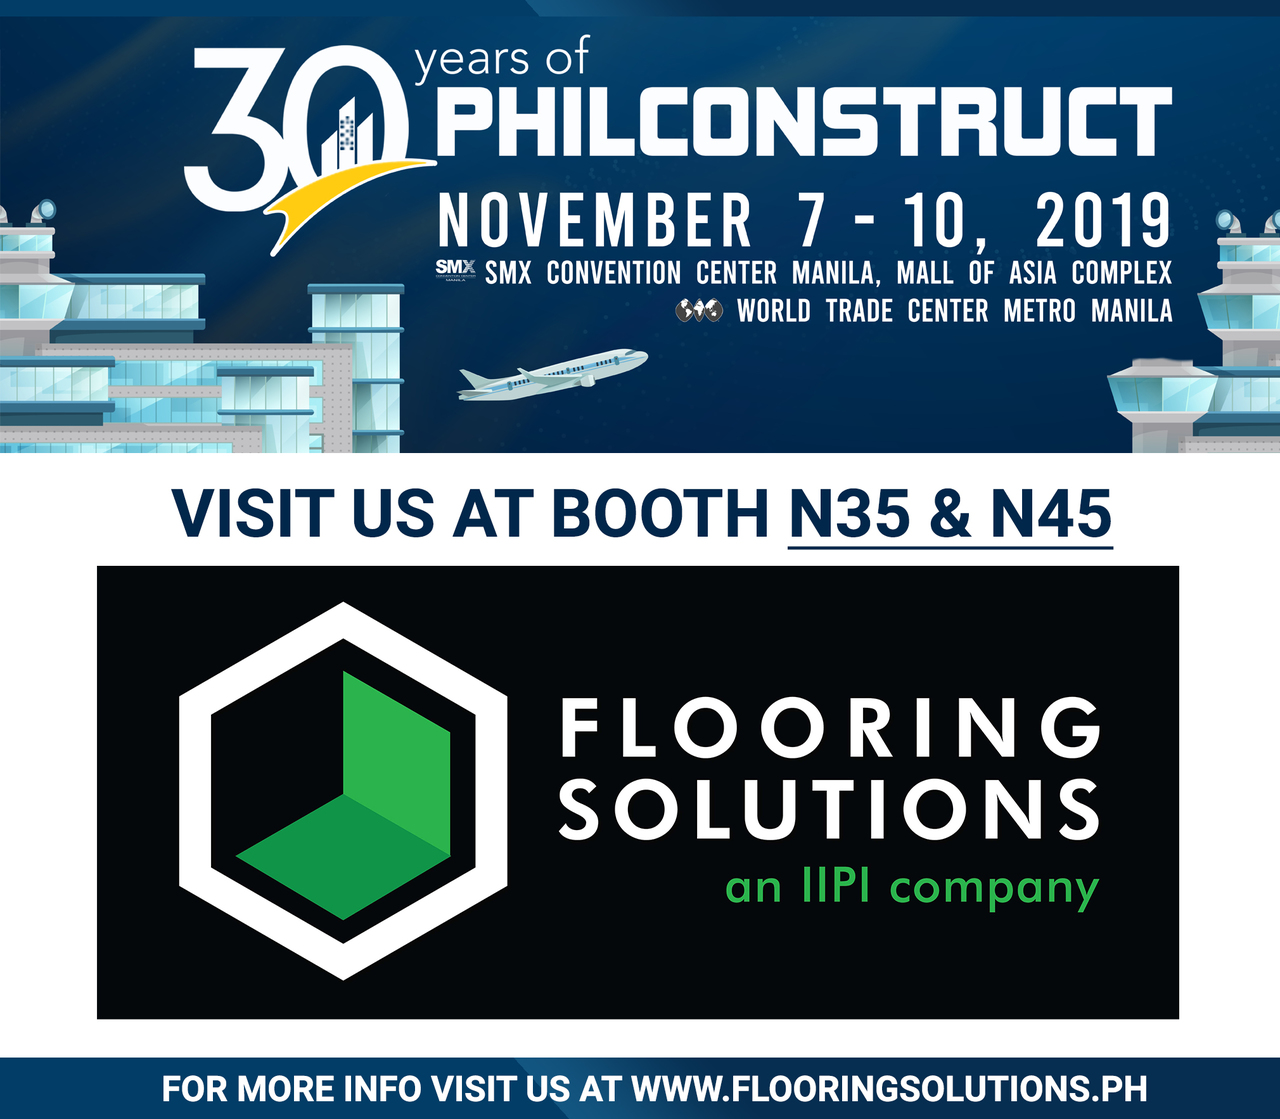 Poster for PHILCONSTRUCT 2019 by Flooring Solutions